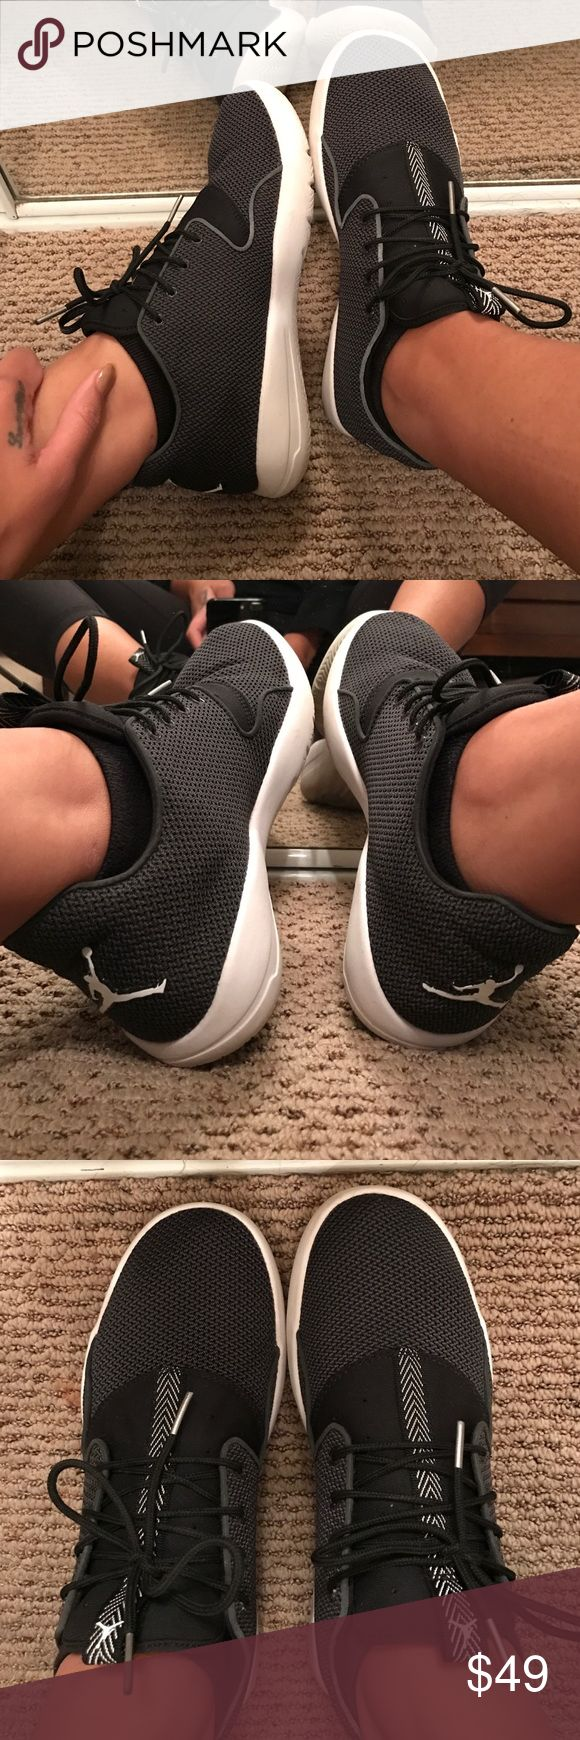 Jordan Eclipse. Jordan Eclipse sneakers. Worn twice & in like new condition. No smell. Exactly as pictures. Kids size 7y but fits a women's size 8. Jordan Shoes Sneakers